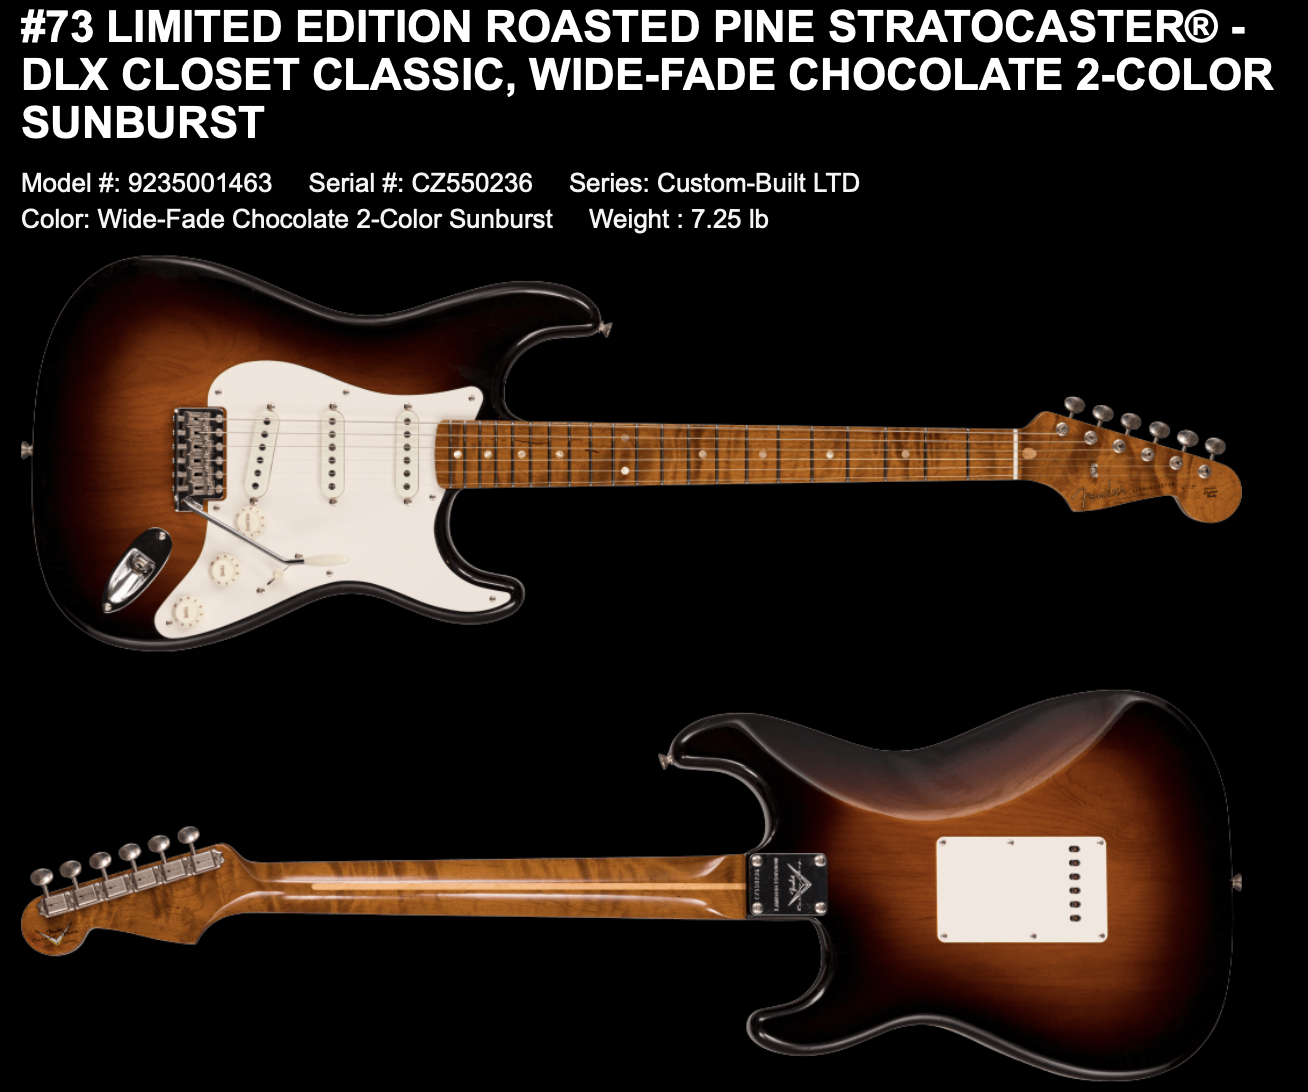 (PRE-ORDER) FENDER CUSTOM SHOP LIMITED EDITION ROASTED PINE STRATOCASTER DLX CLOSET CLASSIC IN WIDE-FADE CHOCOLATE 2-COLOR SUNBURST